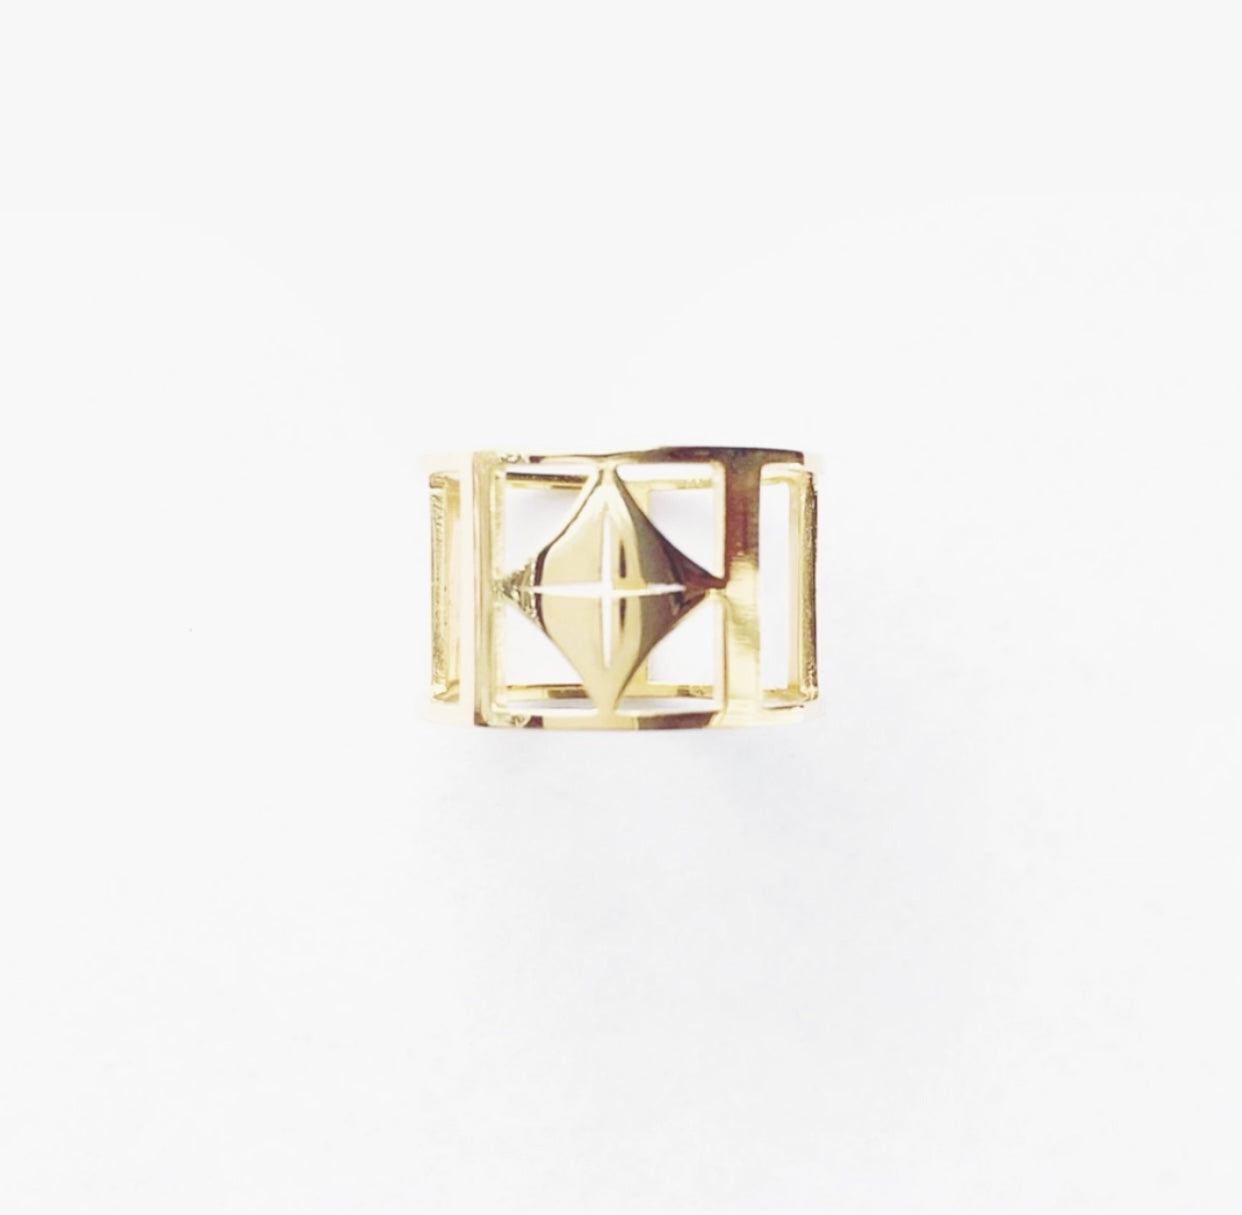 O.H.M. Classic Ring (14K Gold)